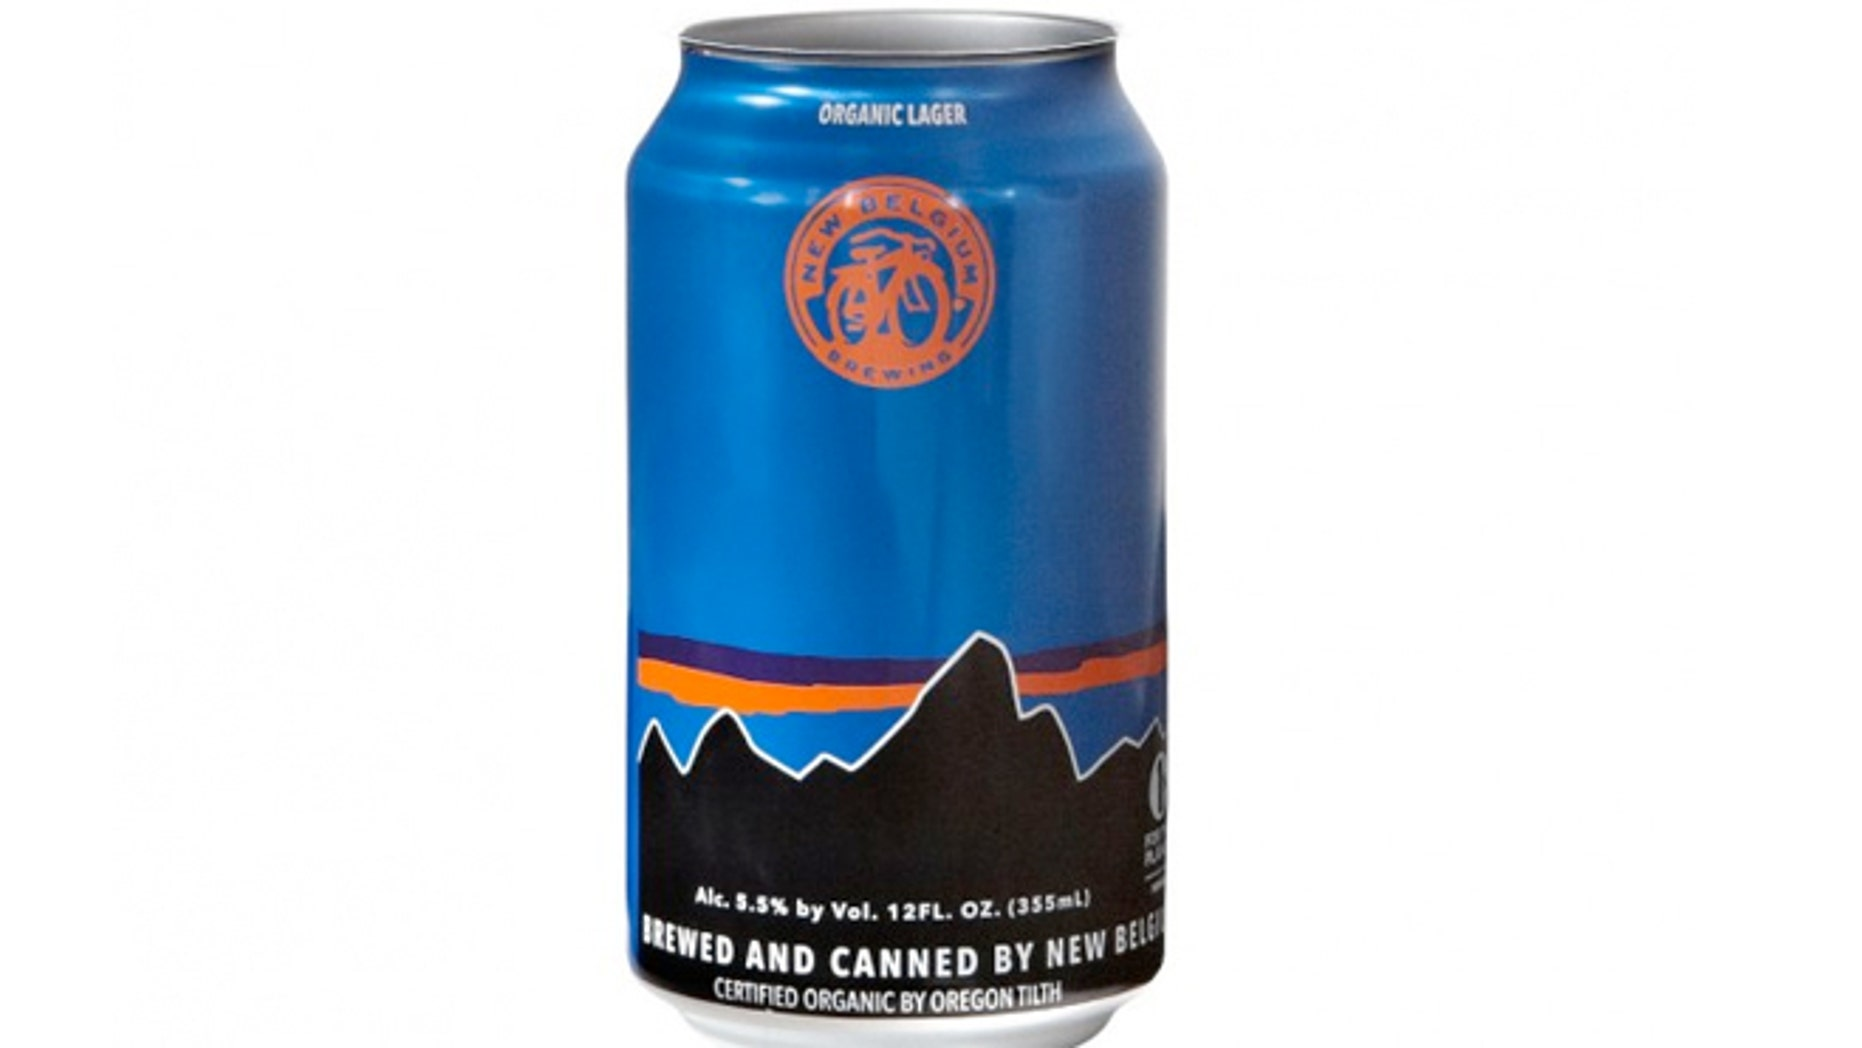 Patagonia is partnering with craft brewer New Belgium Brewing to create an organic larger.